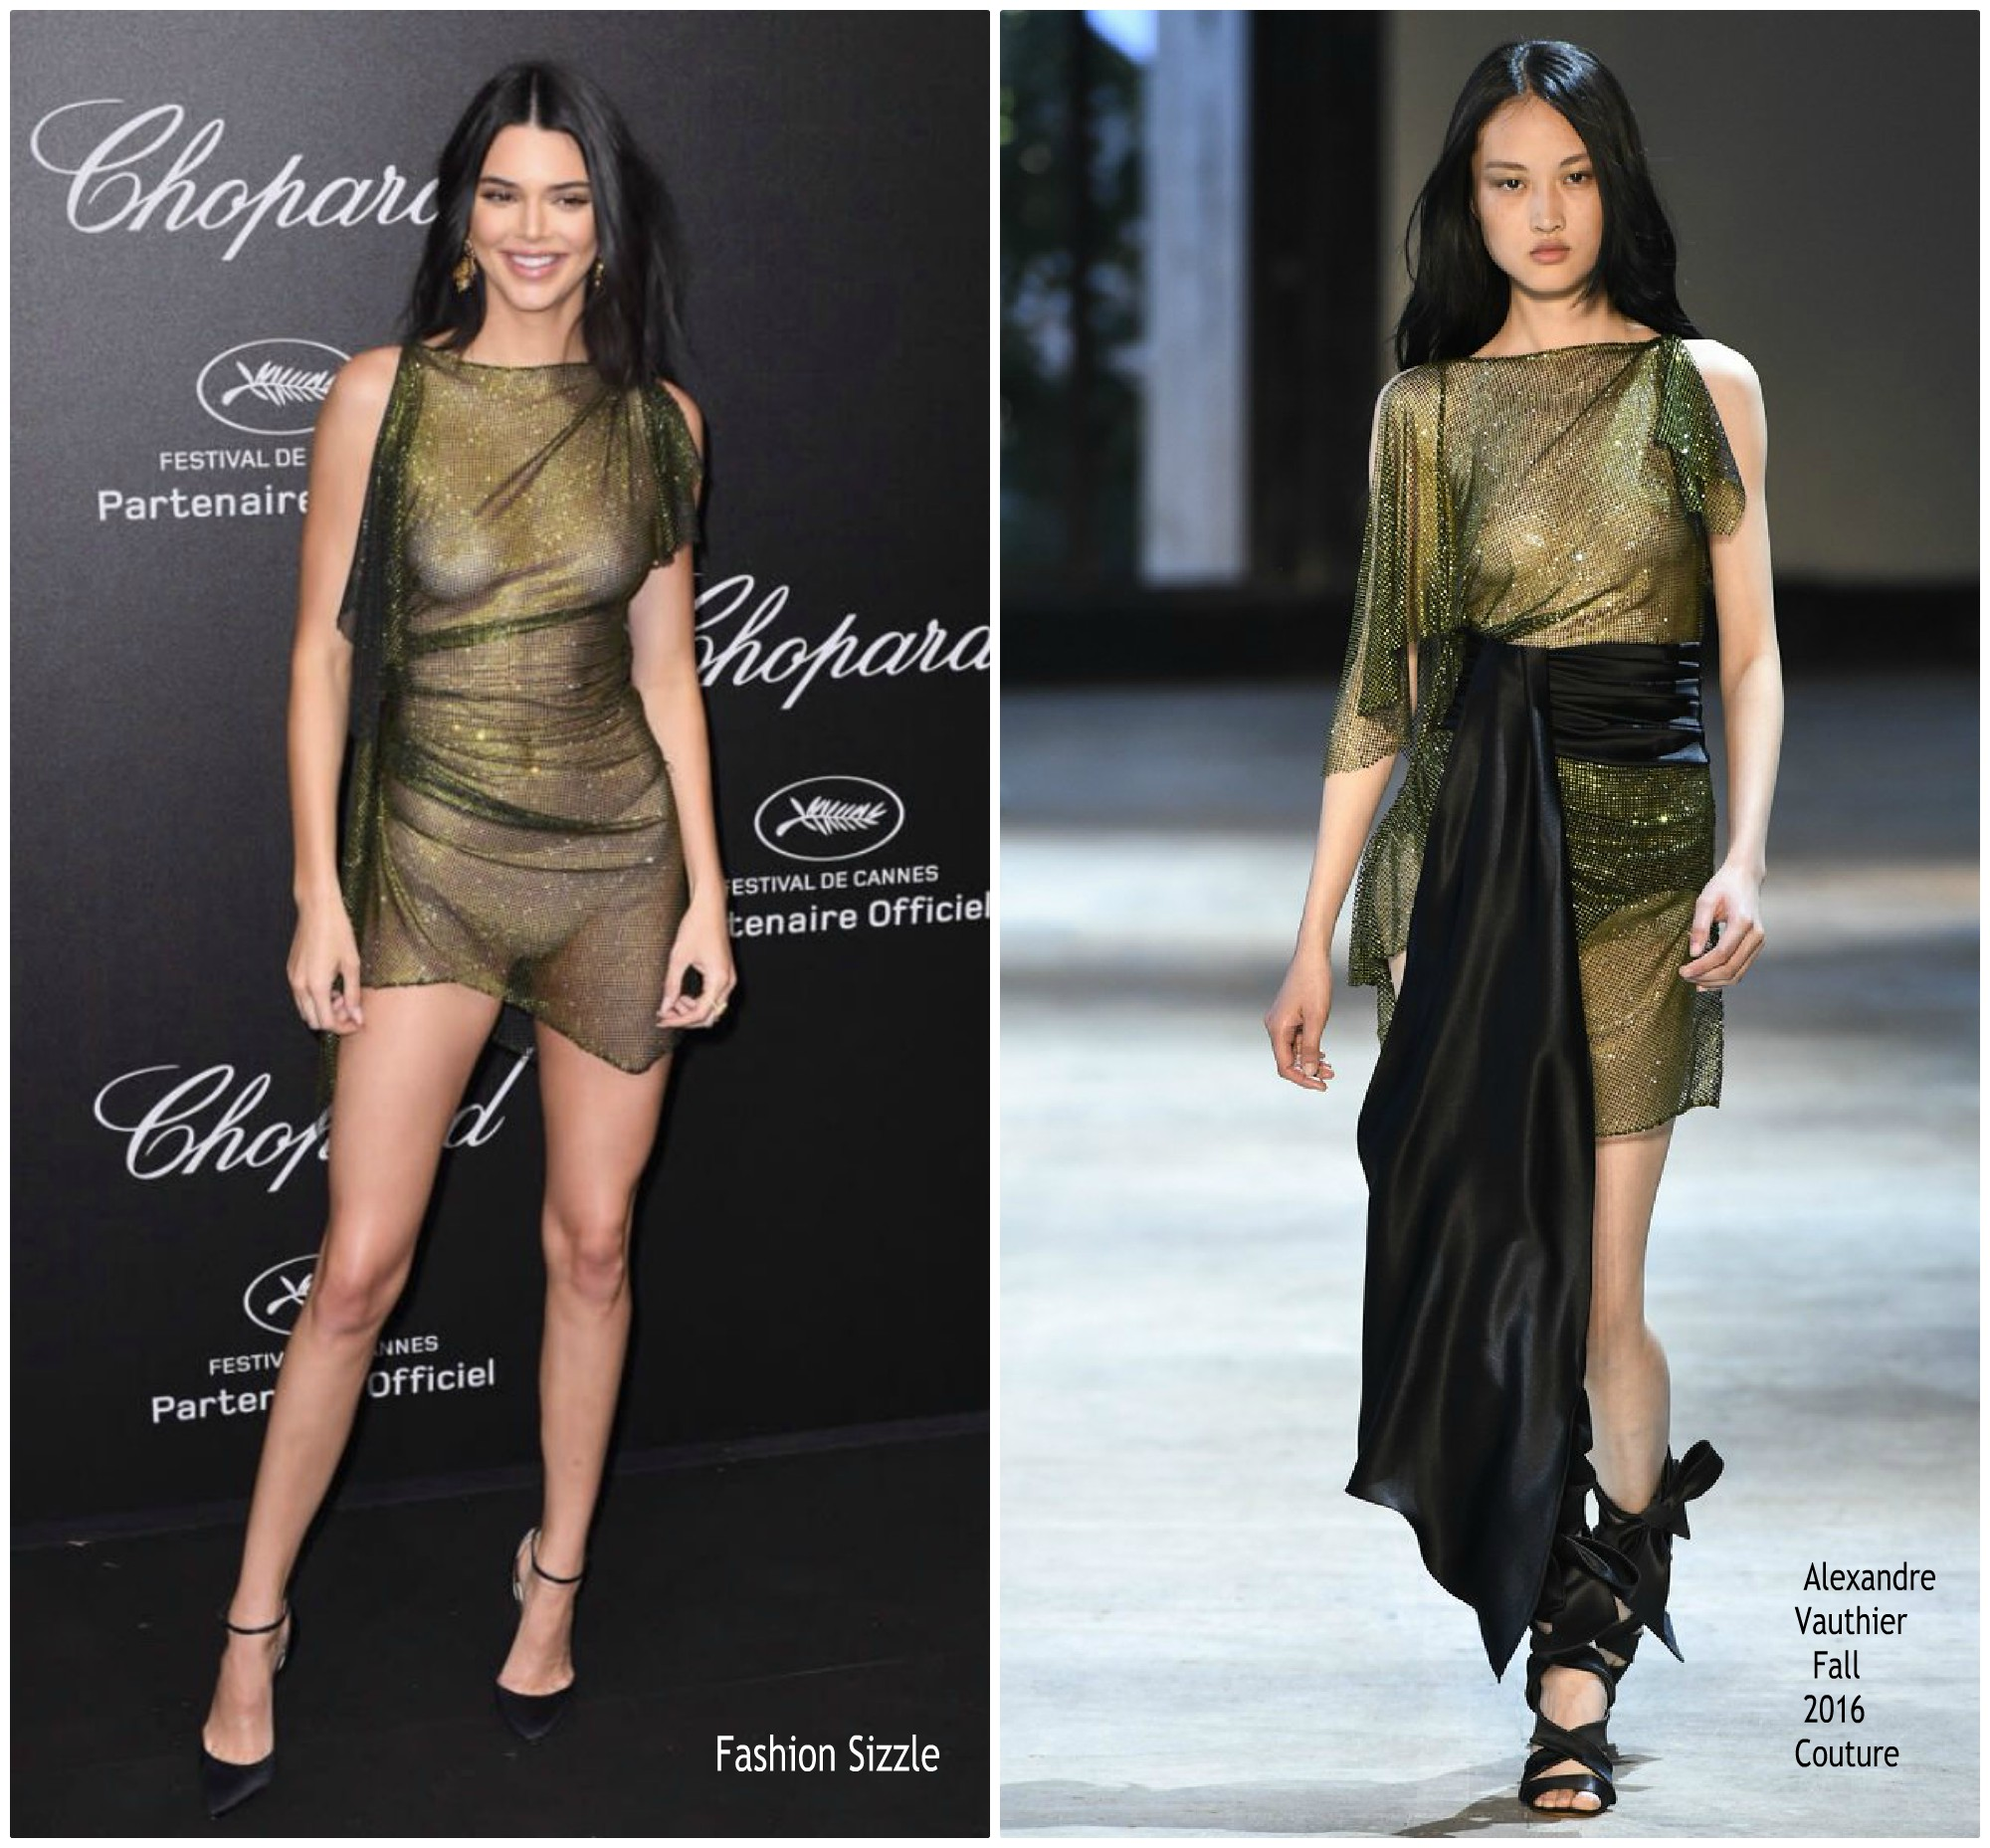 kendall-jenner-in-alexandre-vauthier-chopard-secret-night-party-2018-cannes-film-festival